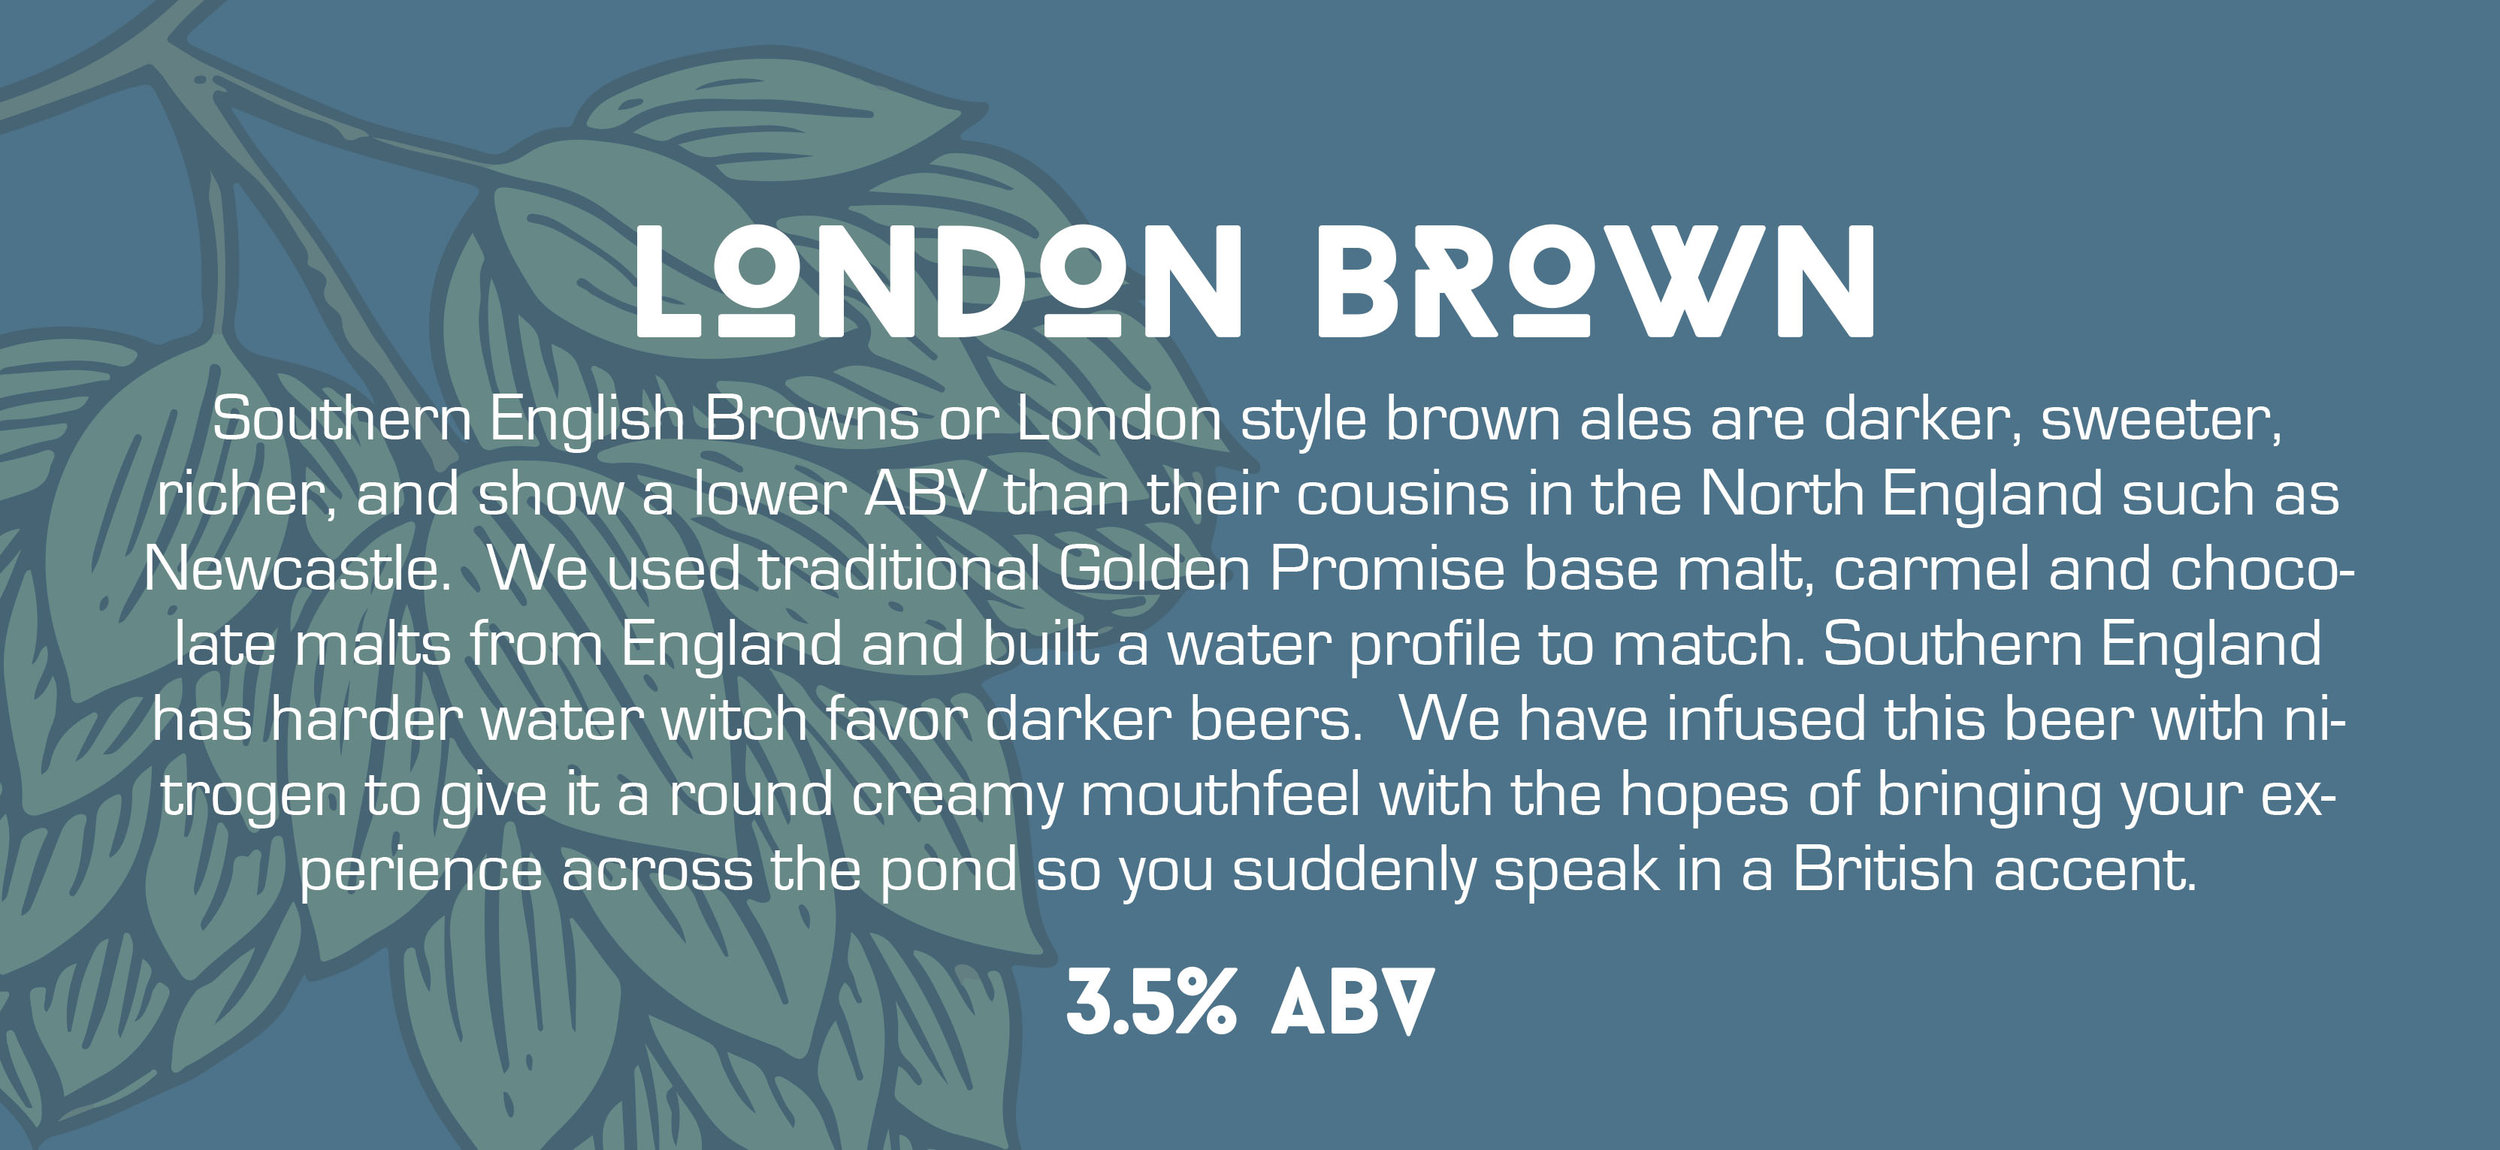 london brown.jpg